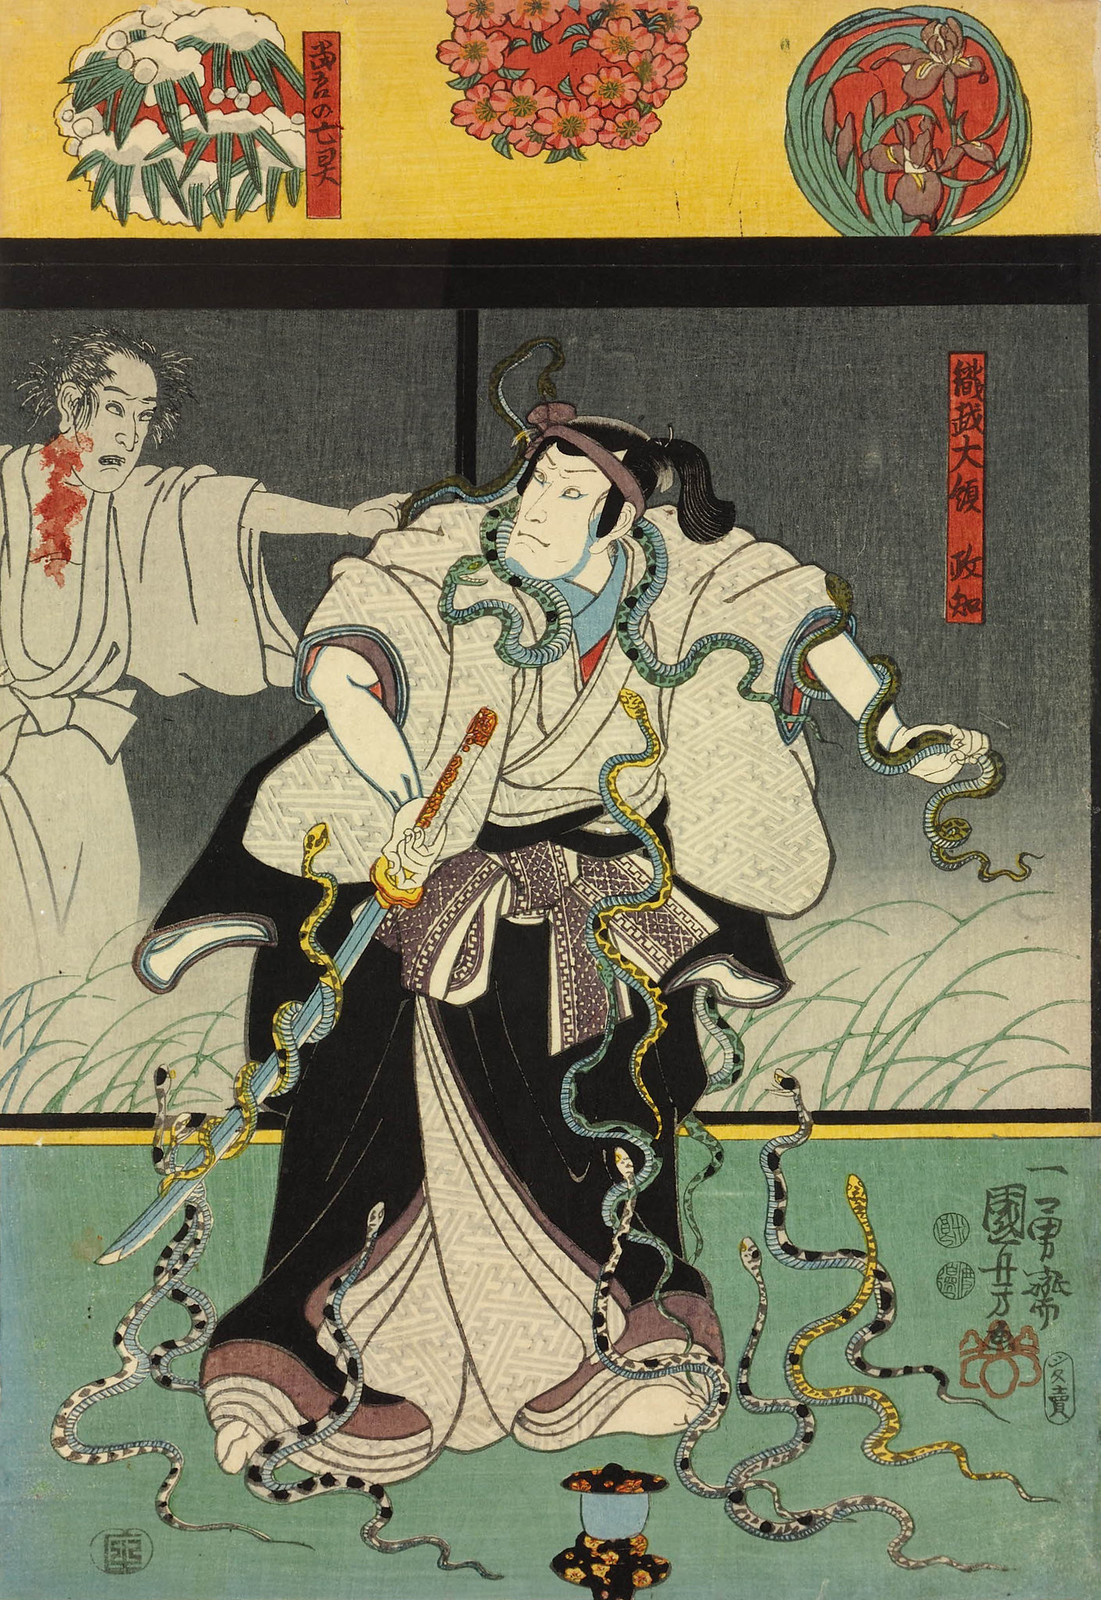 Utagawa Kuniyoshi - Orikoshi Masatomo (centre) (played by Bando Hikosaburo IV) is attacked by the ghost of Asakura Togo 1853 (middle panel)